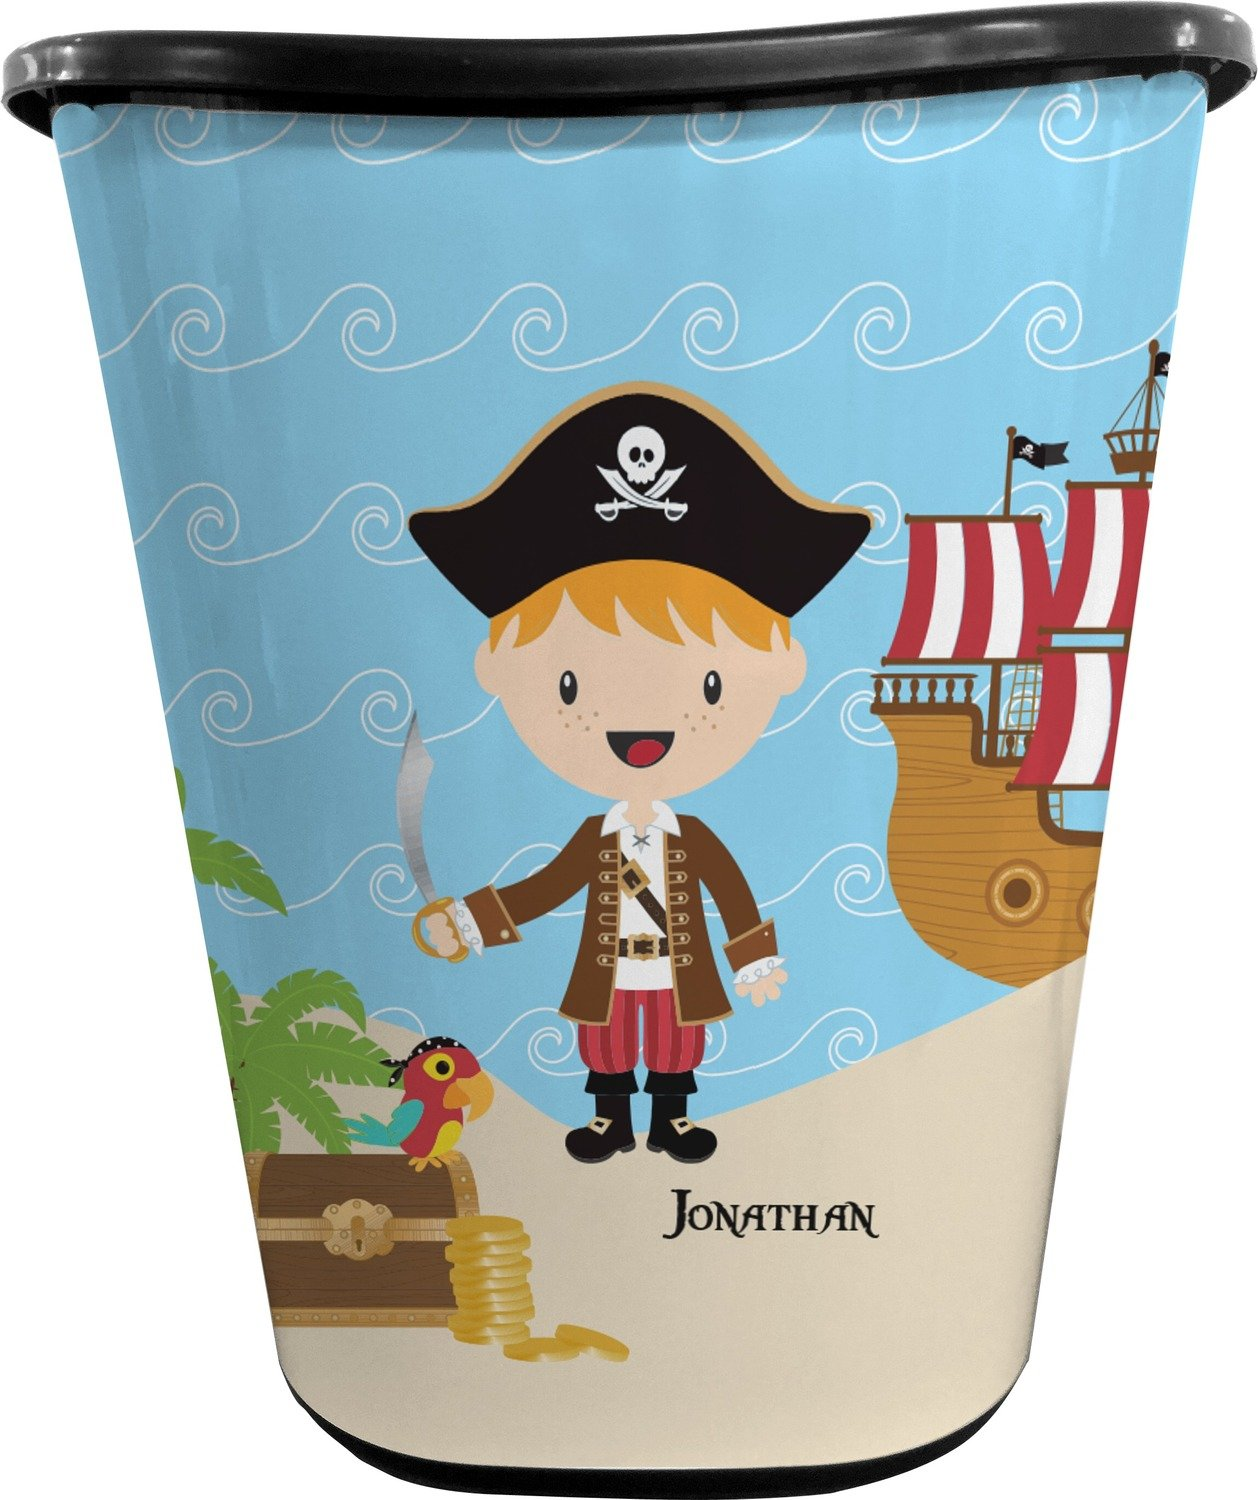 Pirate Scene Waste Basket - Single Sided (Black) (Personalized)